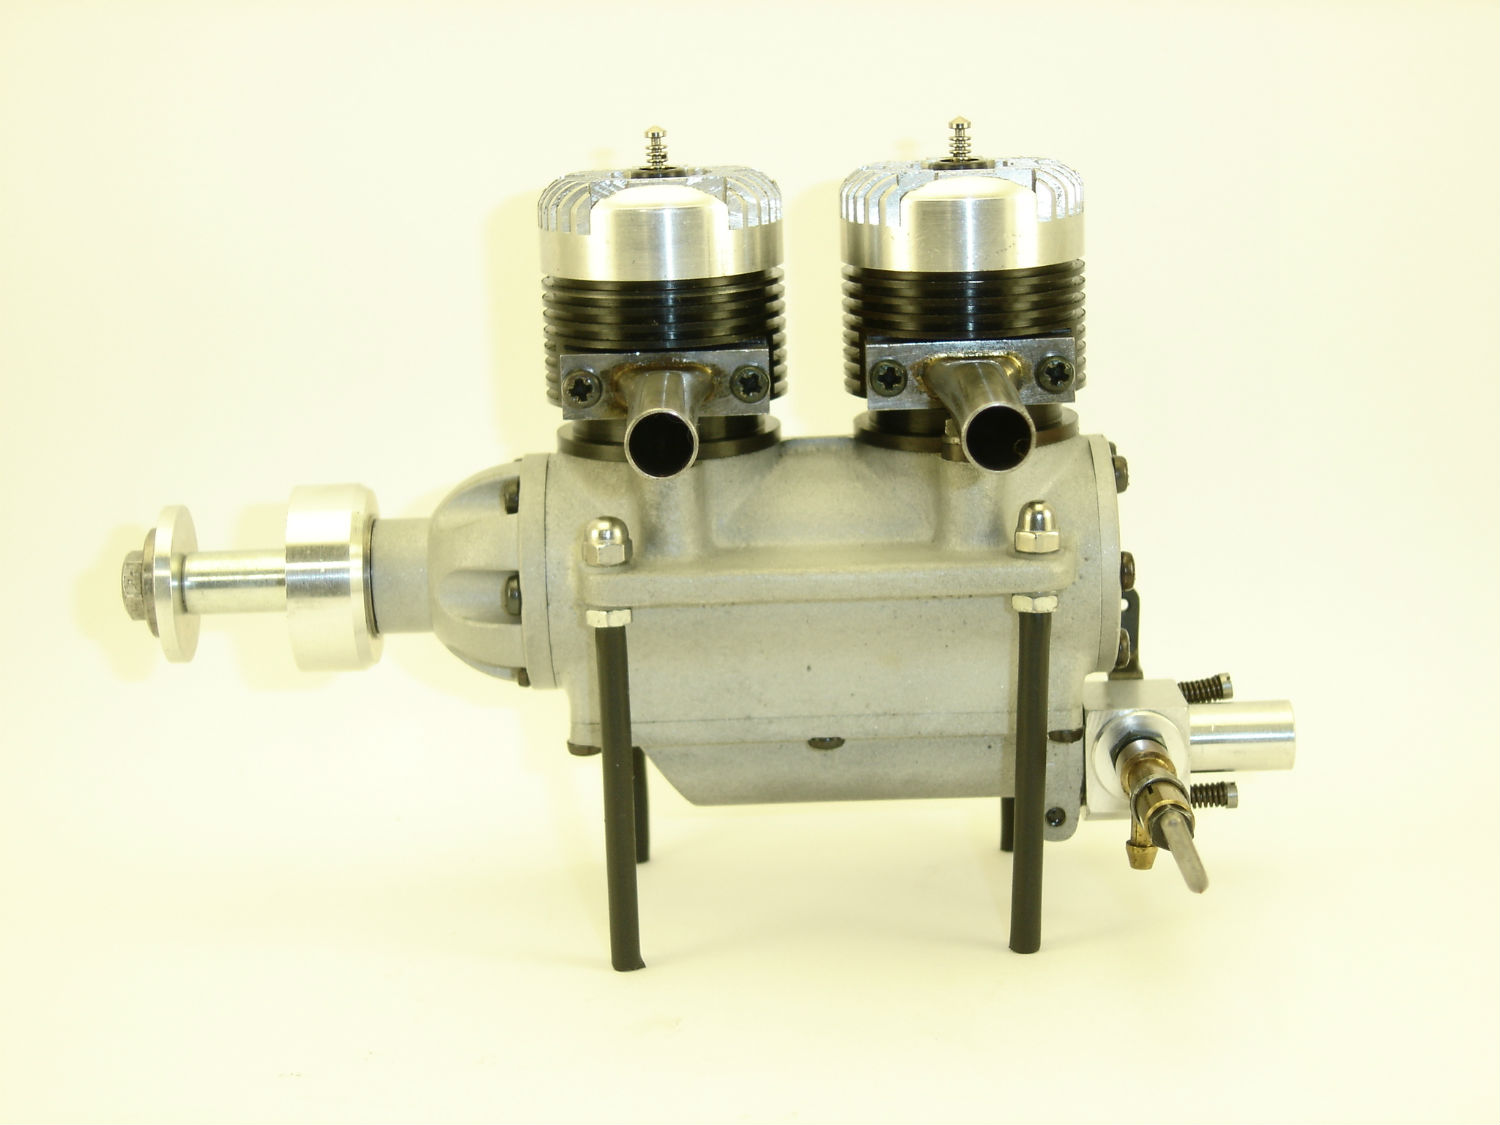 http://jmcollection.free.fr/Images%20moteur/micron2x24l3.jpg